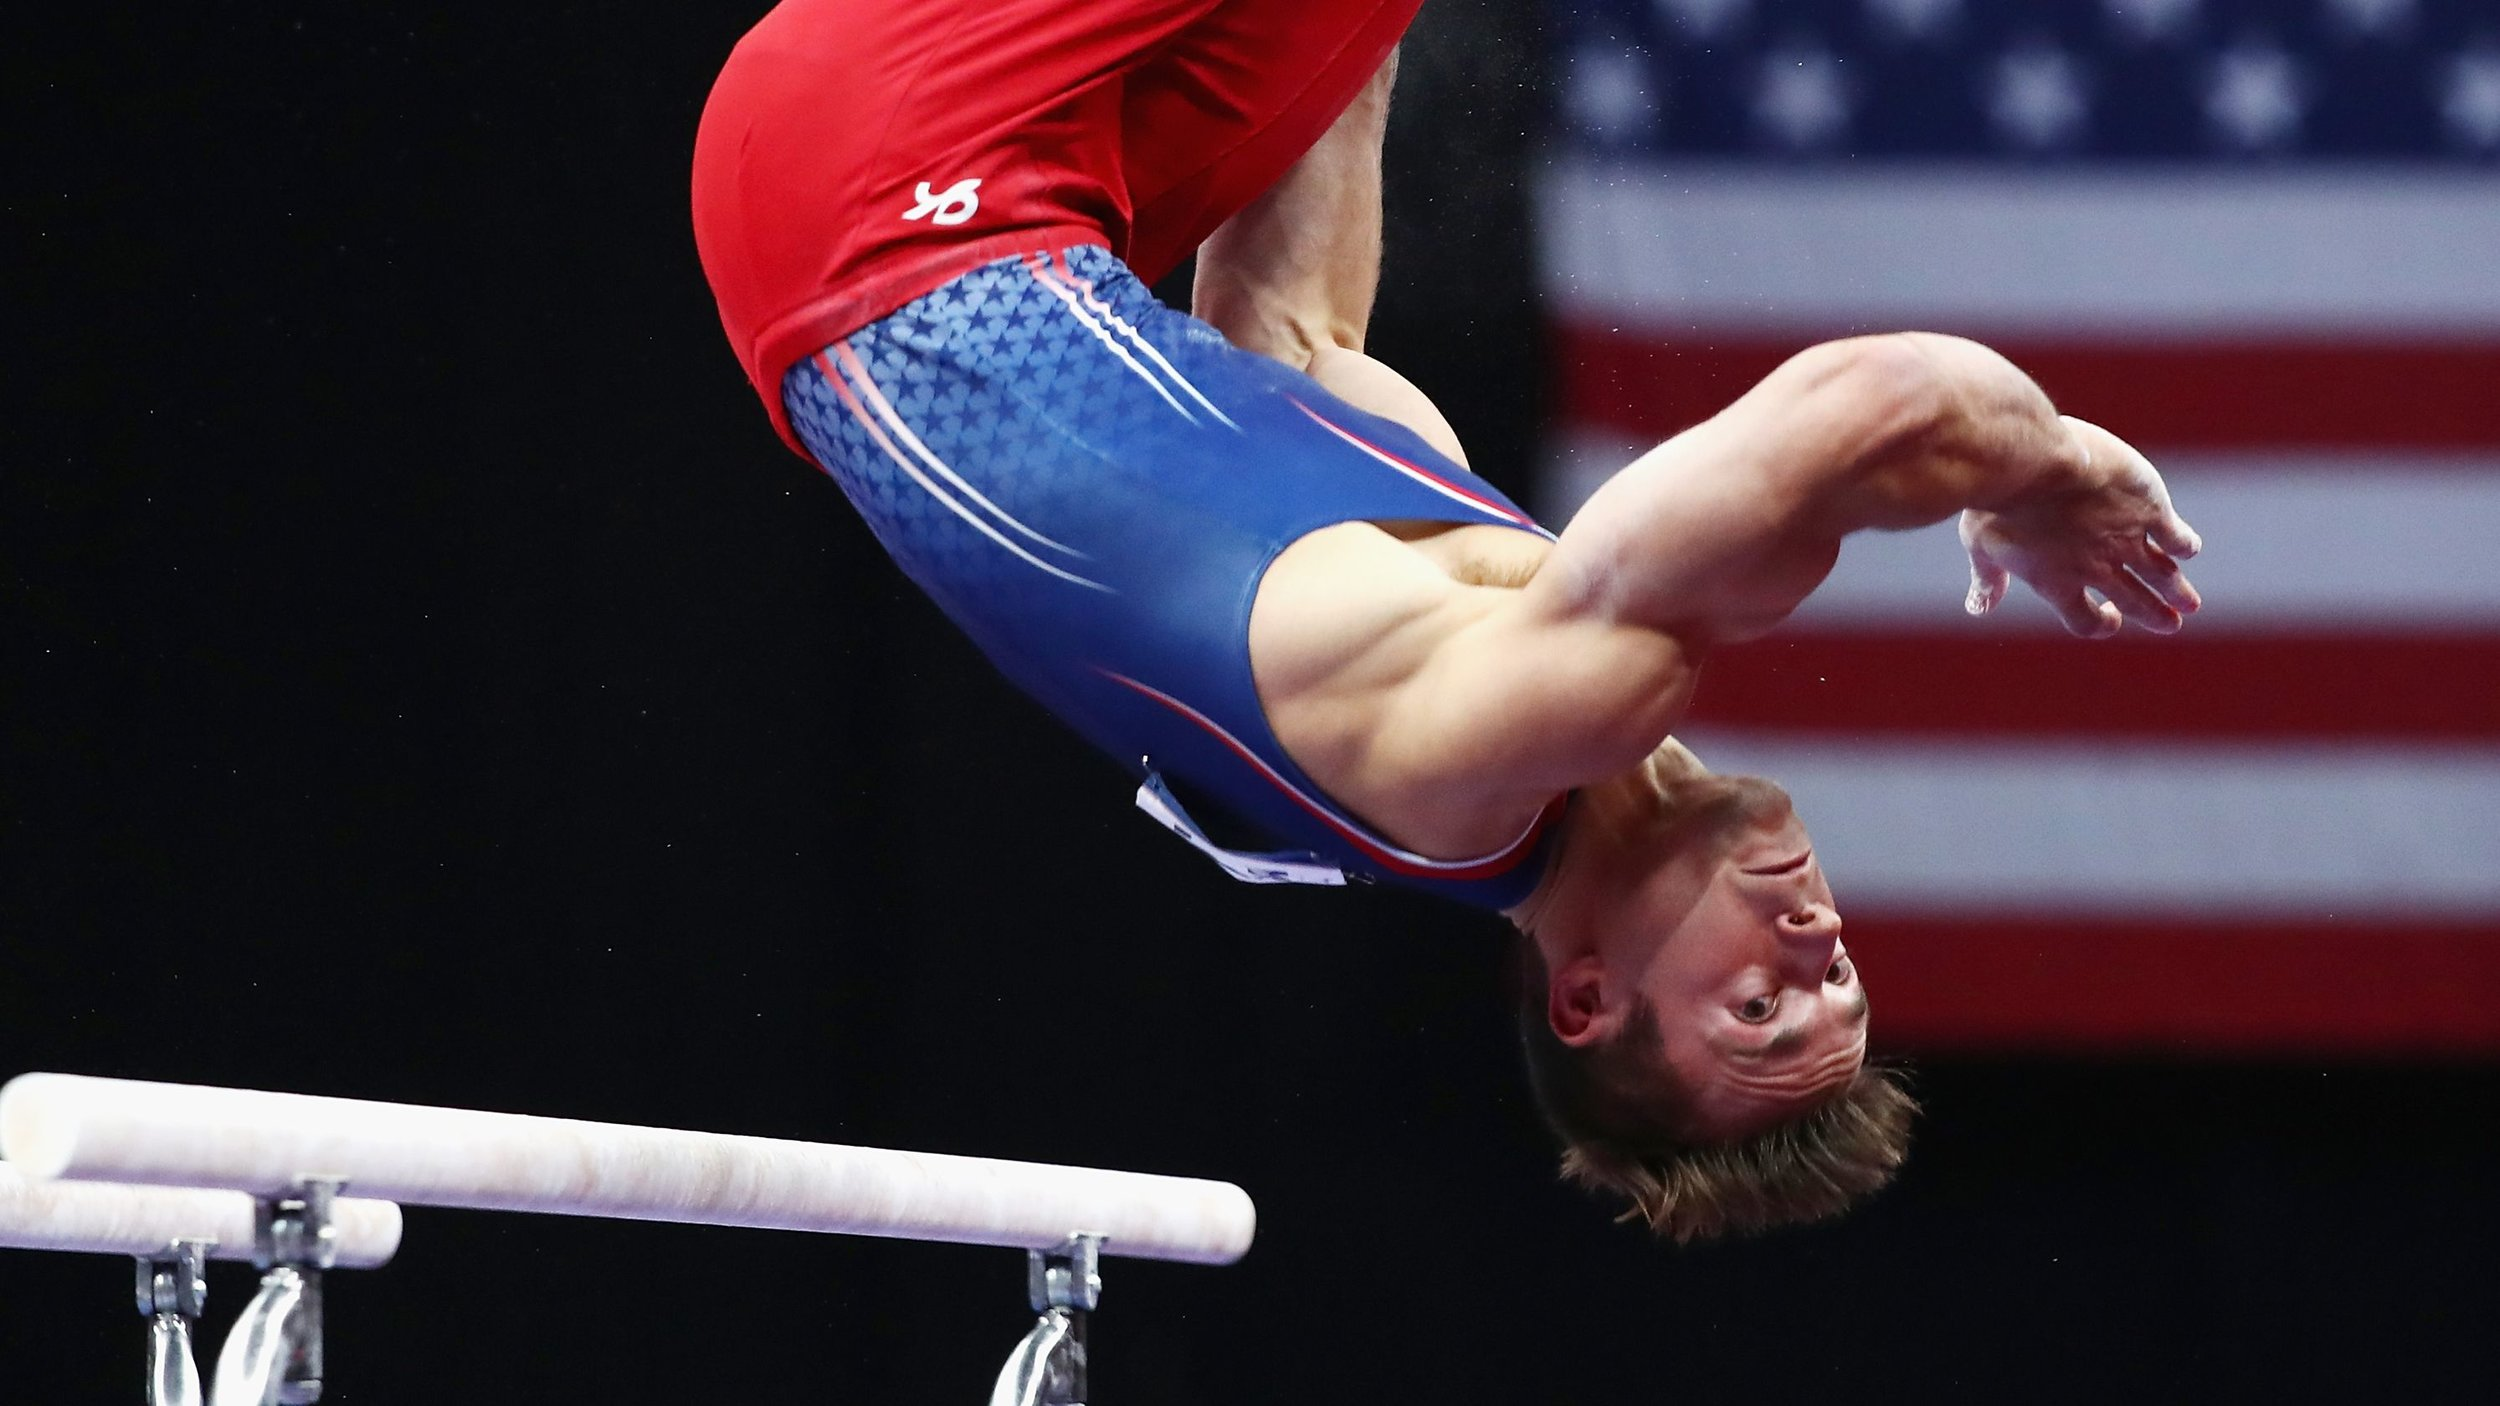 Sam Mikulak will try to spoil Yul Moldauer's potential three-peat at the American Cup Saturday in Greensboro, North Carolina.